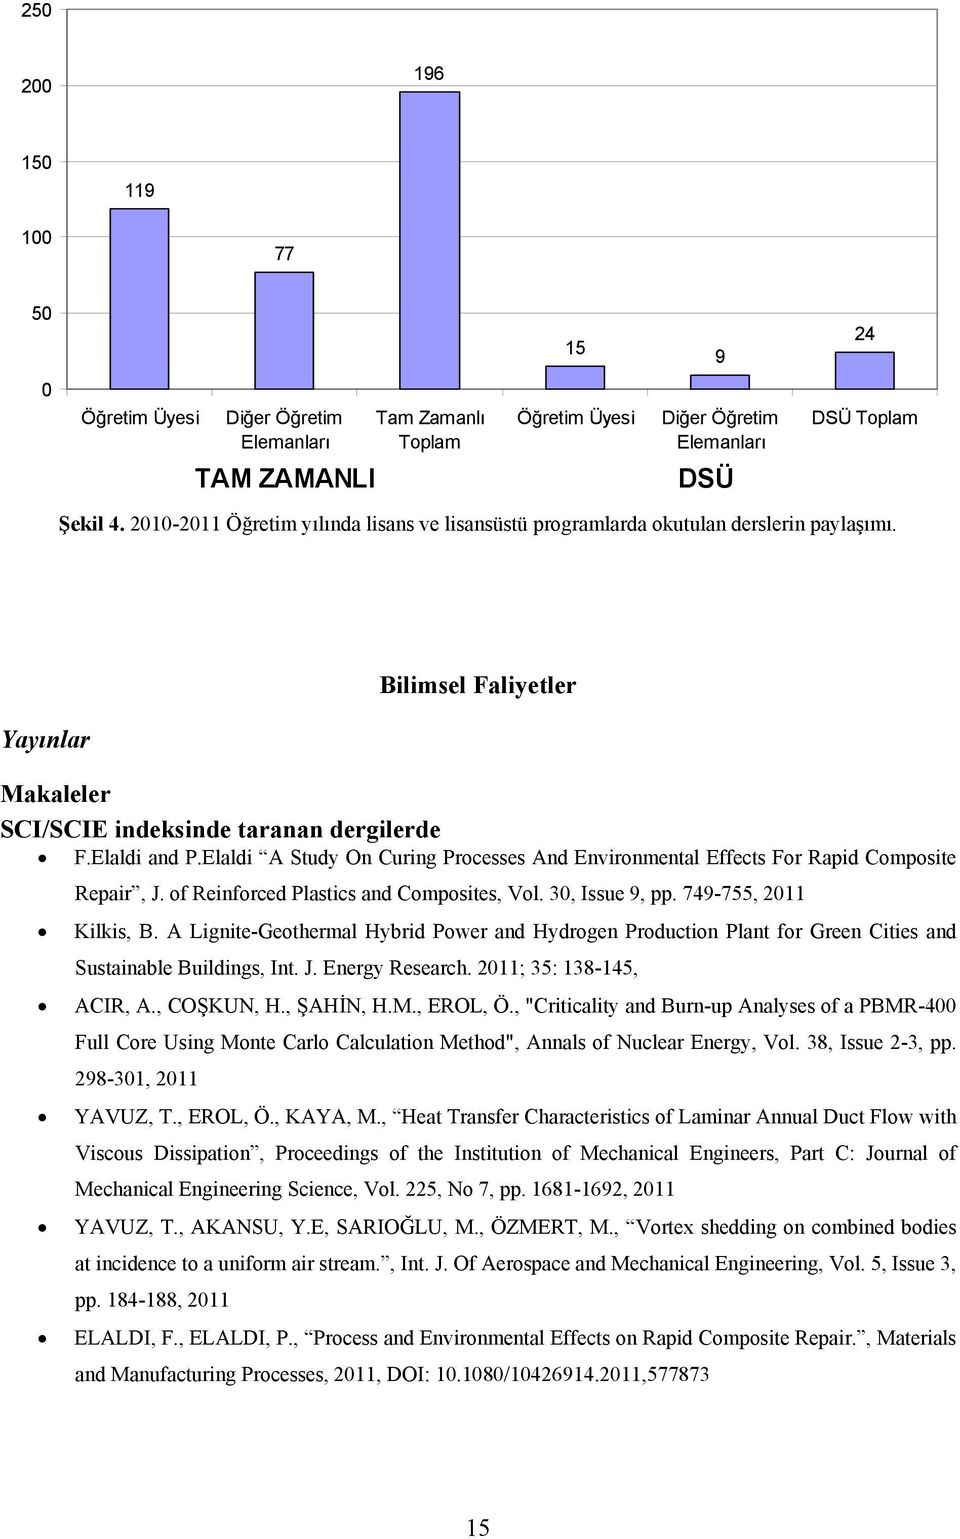 Elaldi A Study On Curing Processes And Environmental Effects For Rapid Composite Repair, J. of Reinforced Plastics and Composites, Vol. 30, Issue 9, pp. 749-755, 2011 Kilkis, B.